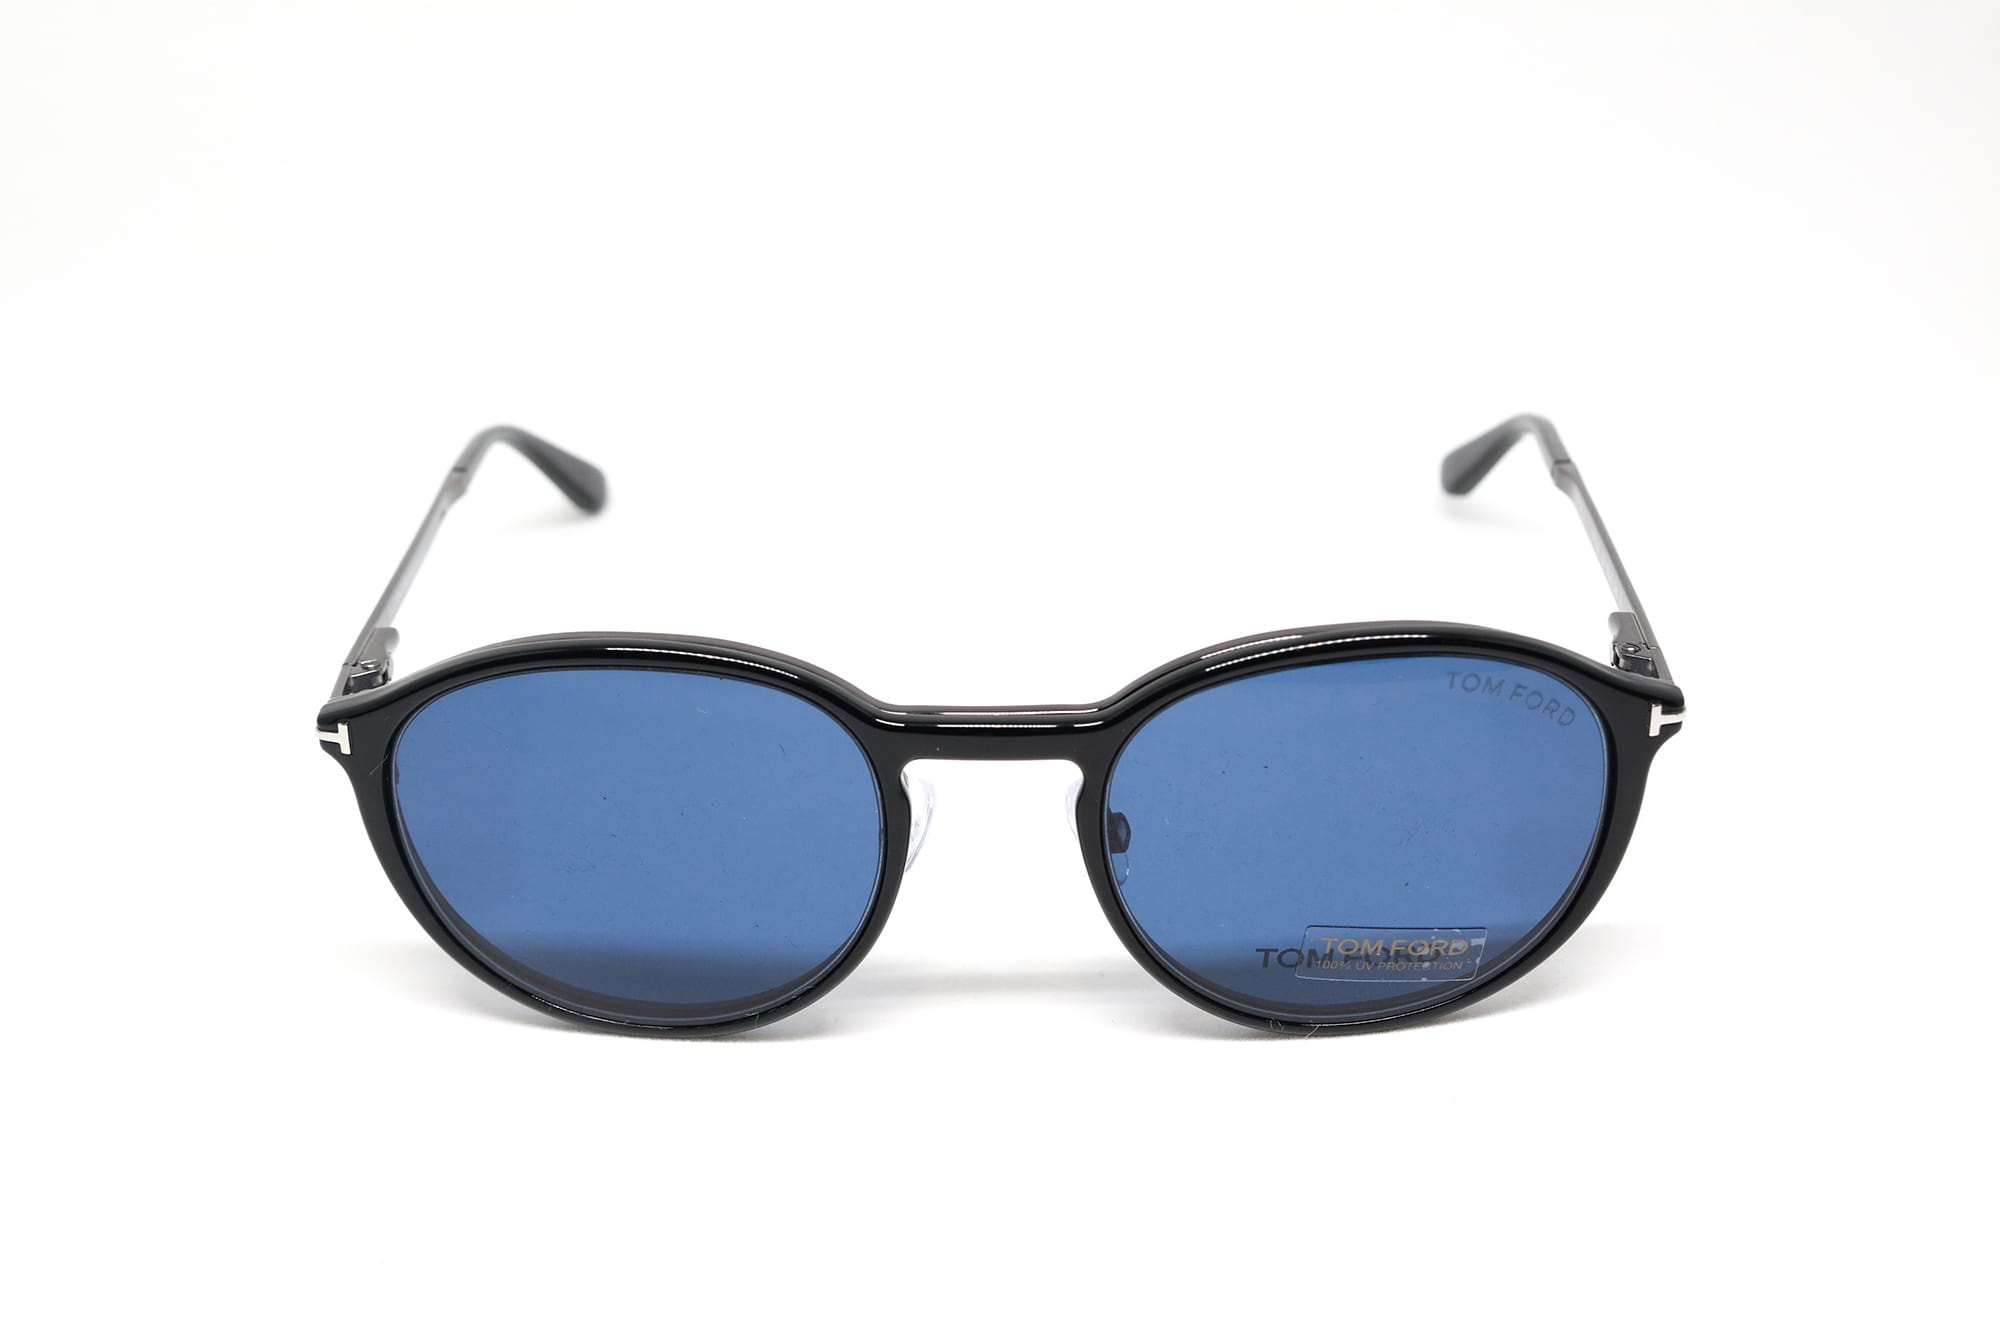 Tom Ford sun glasses Chicago